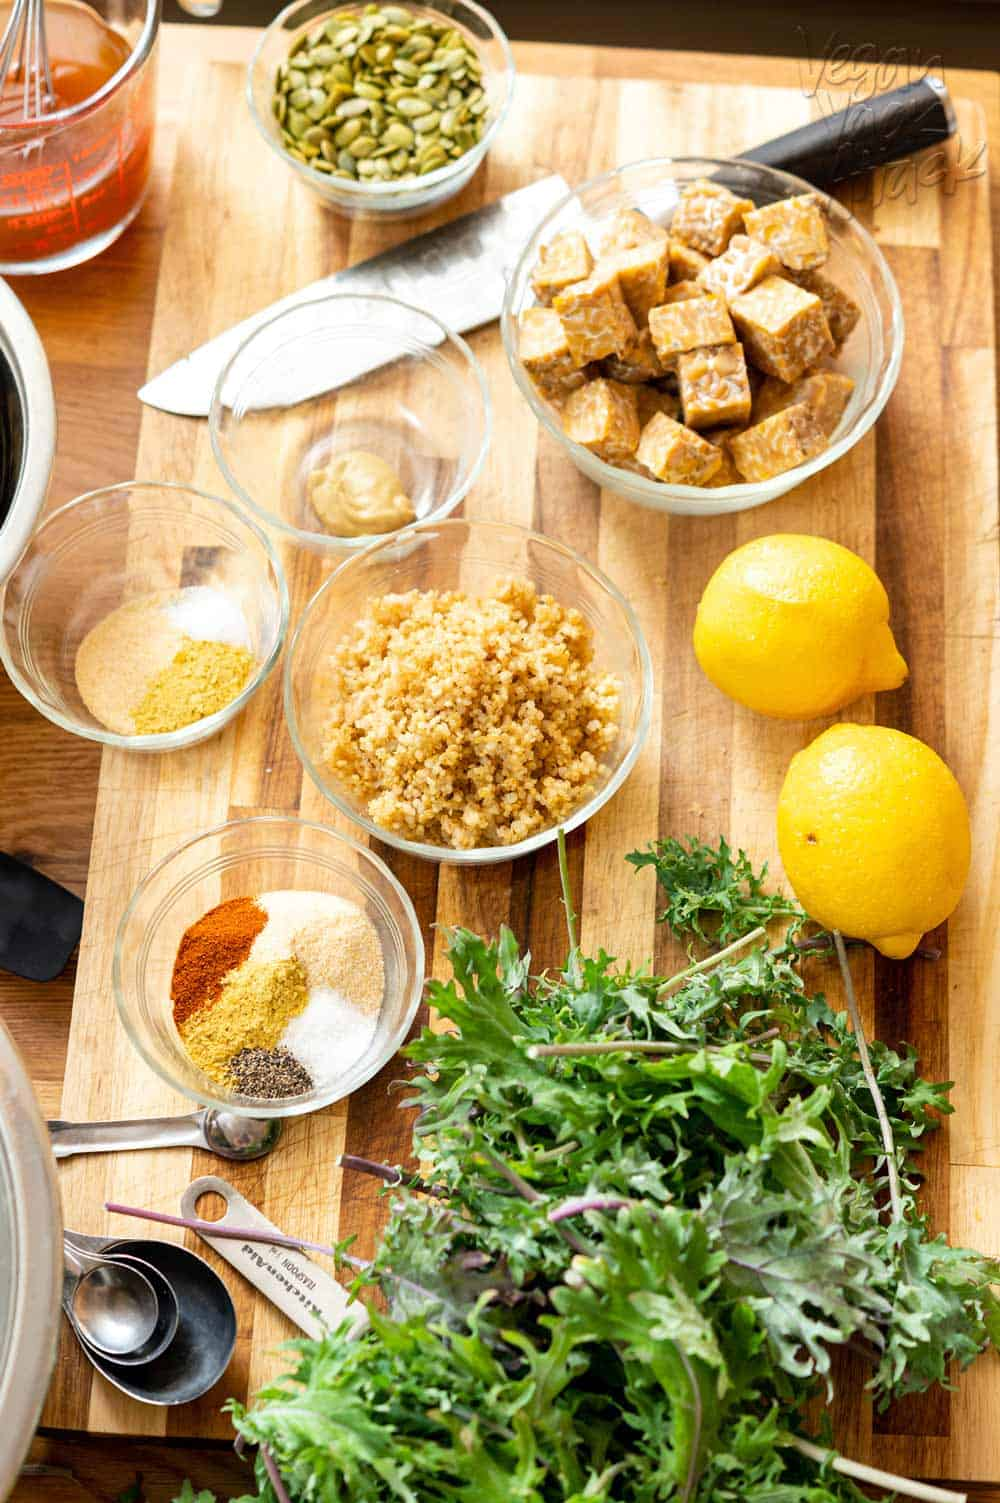 Ingredients such as tempeh, lemon, quinoa, spices, kale, and more laid out on a cutting board